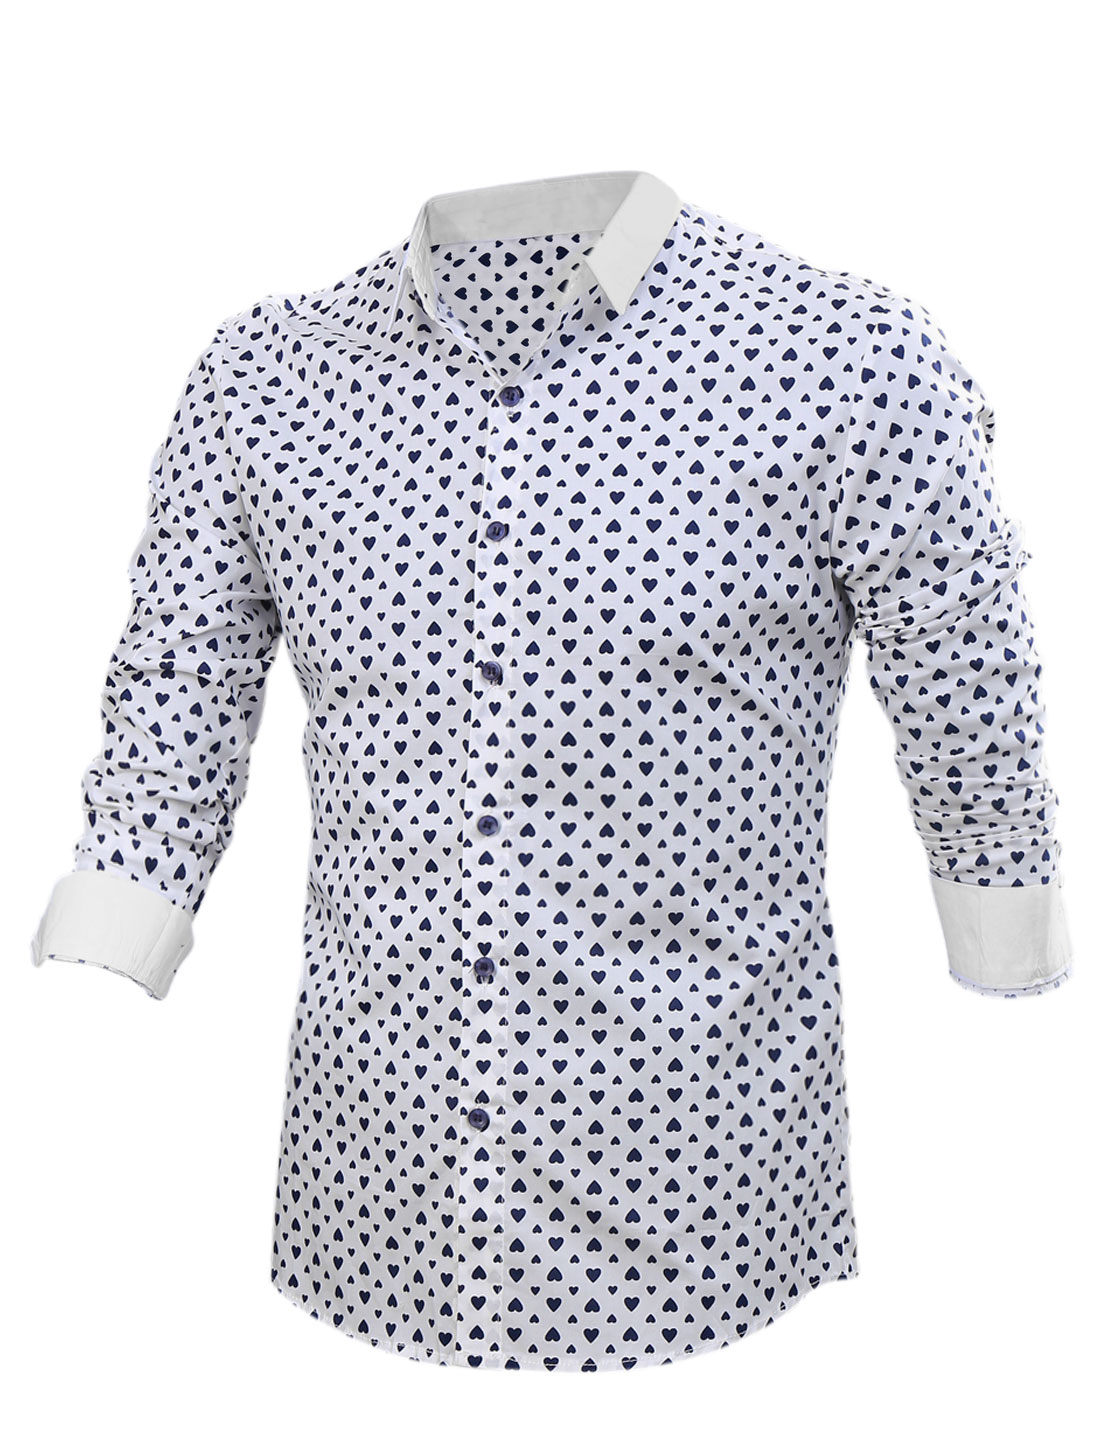 Men Allover Hearts Print Long Sleeves Point Collar Button Down Shirt White M